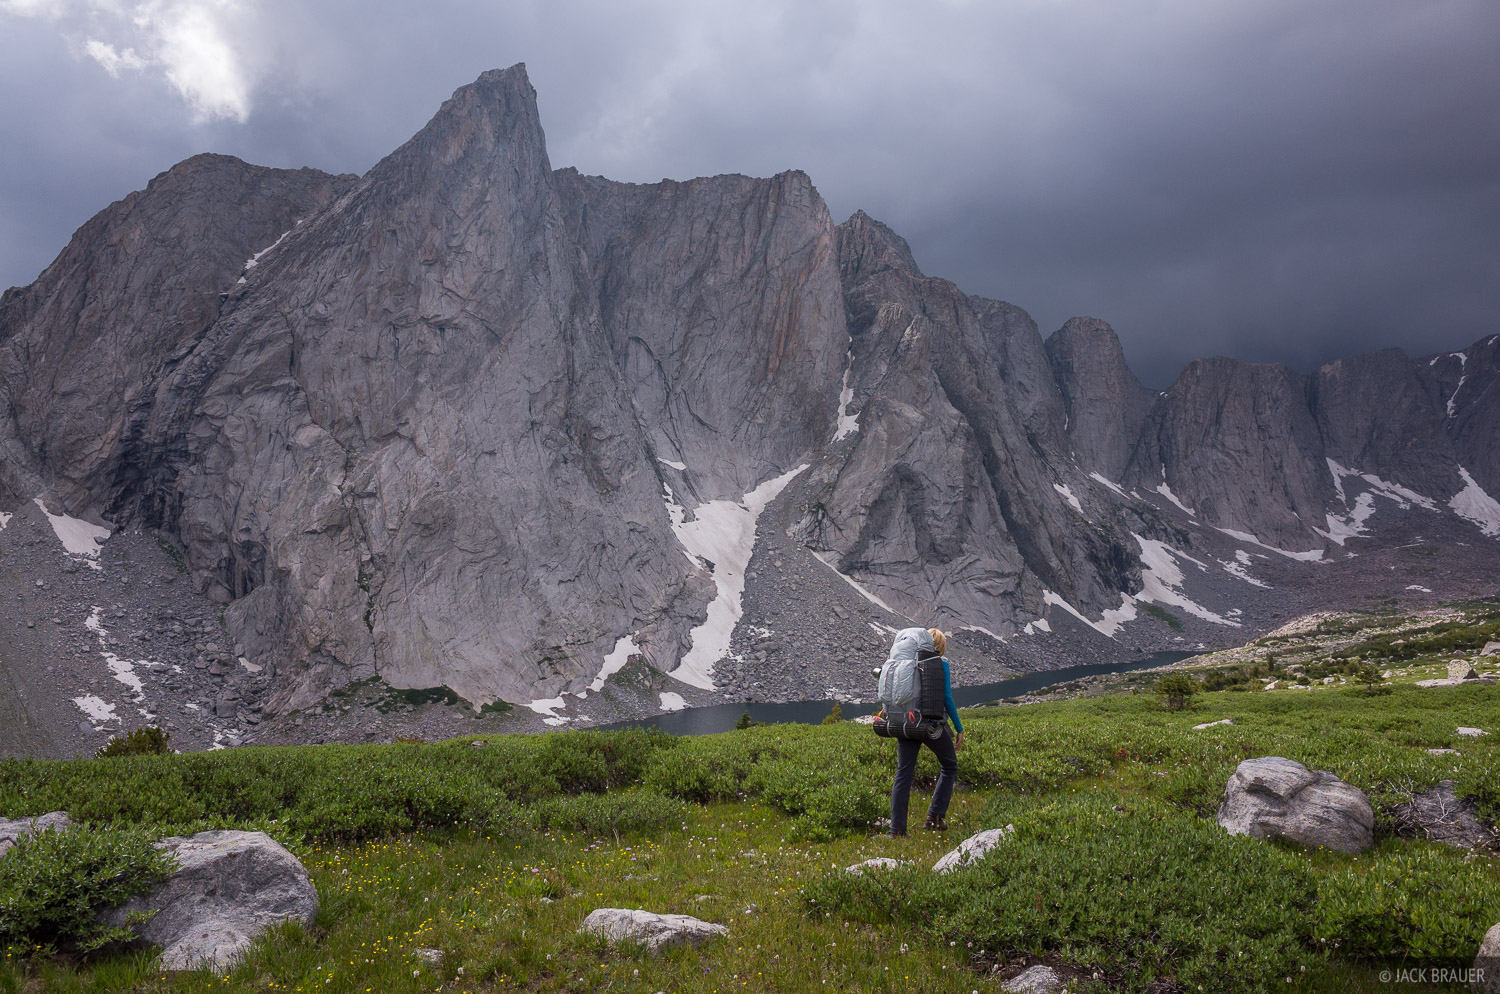 Ambush Peak,Wind River Range,Wyoming, hiking, photo